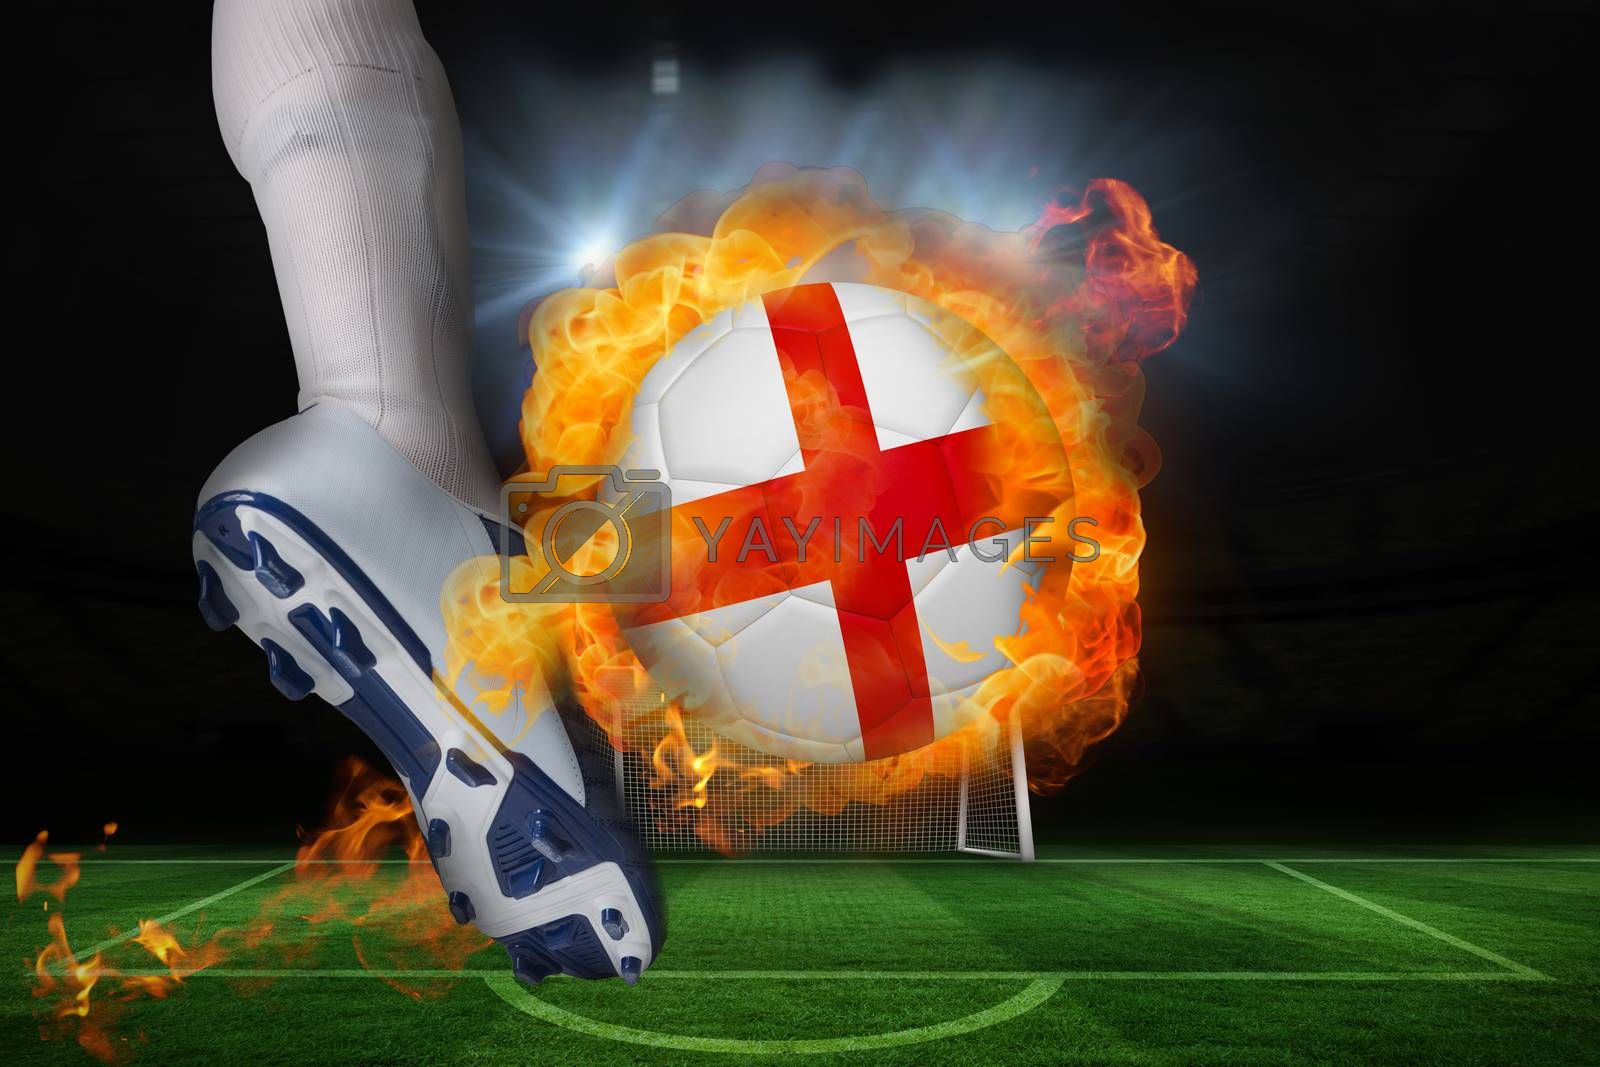 Football player kicking flaming england flag ball by Wavebreakmedia